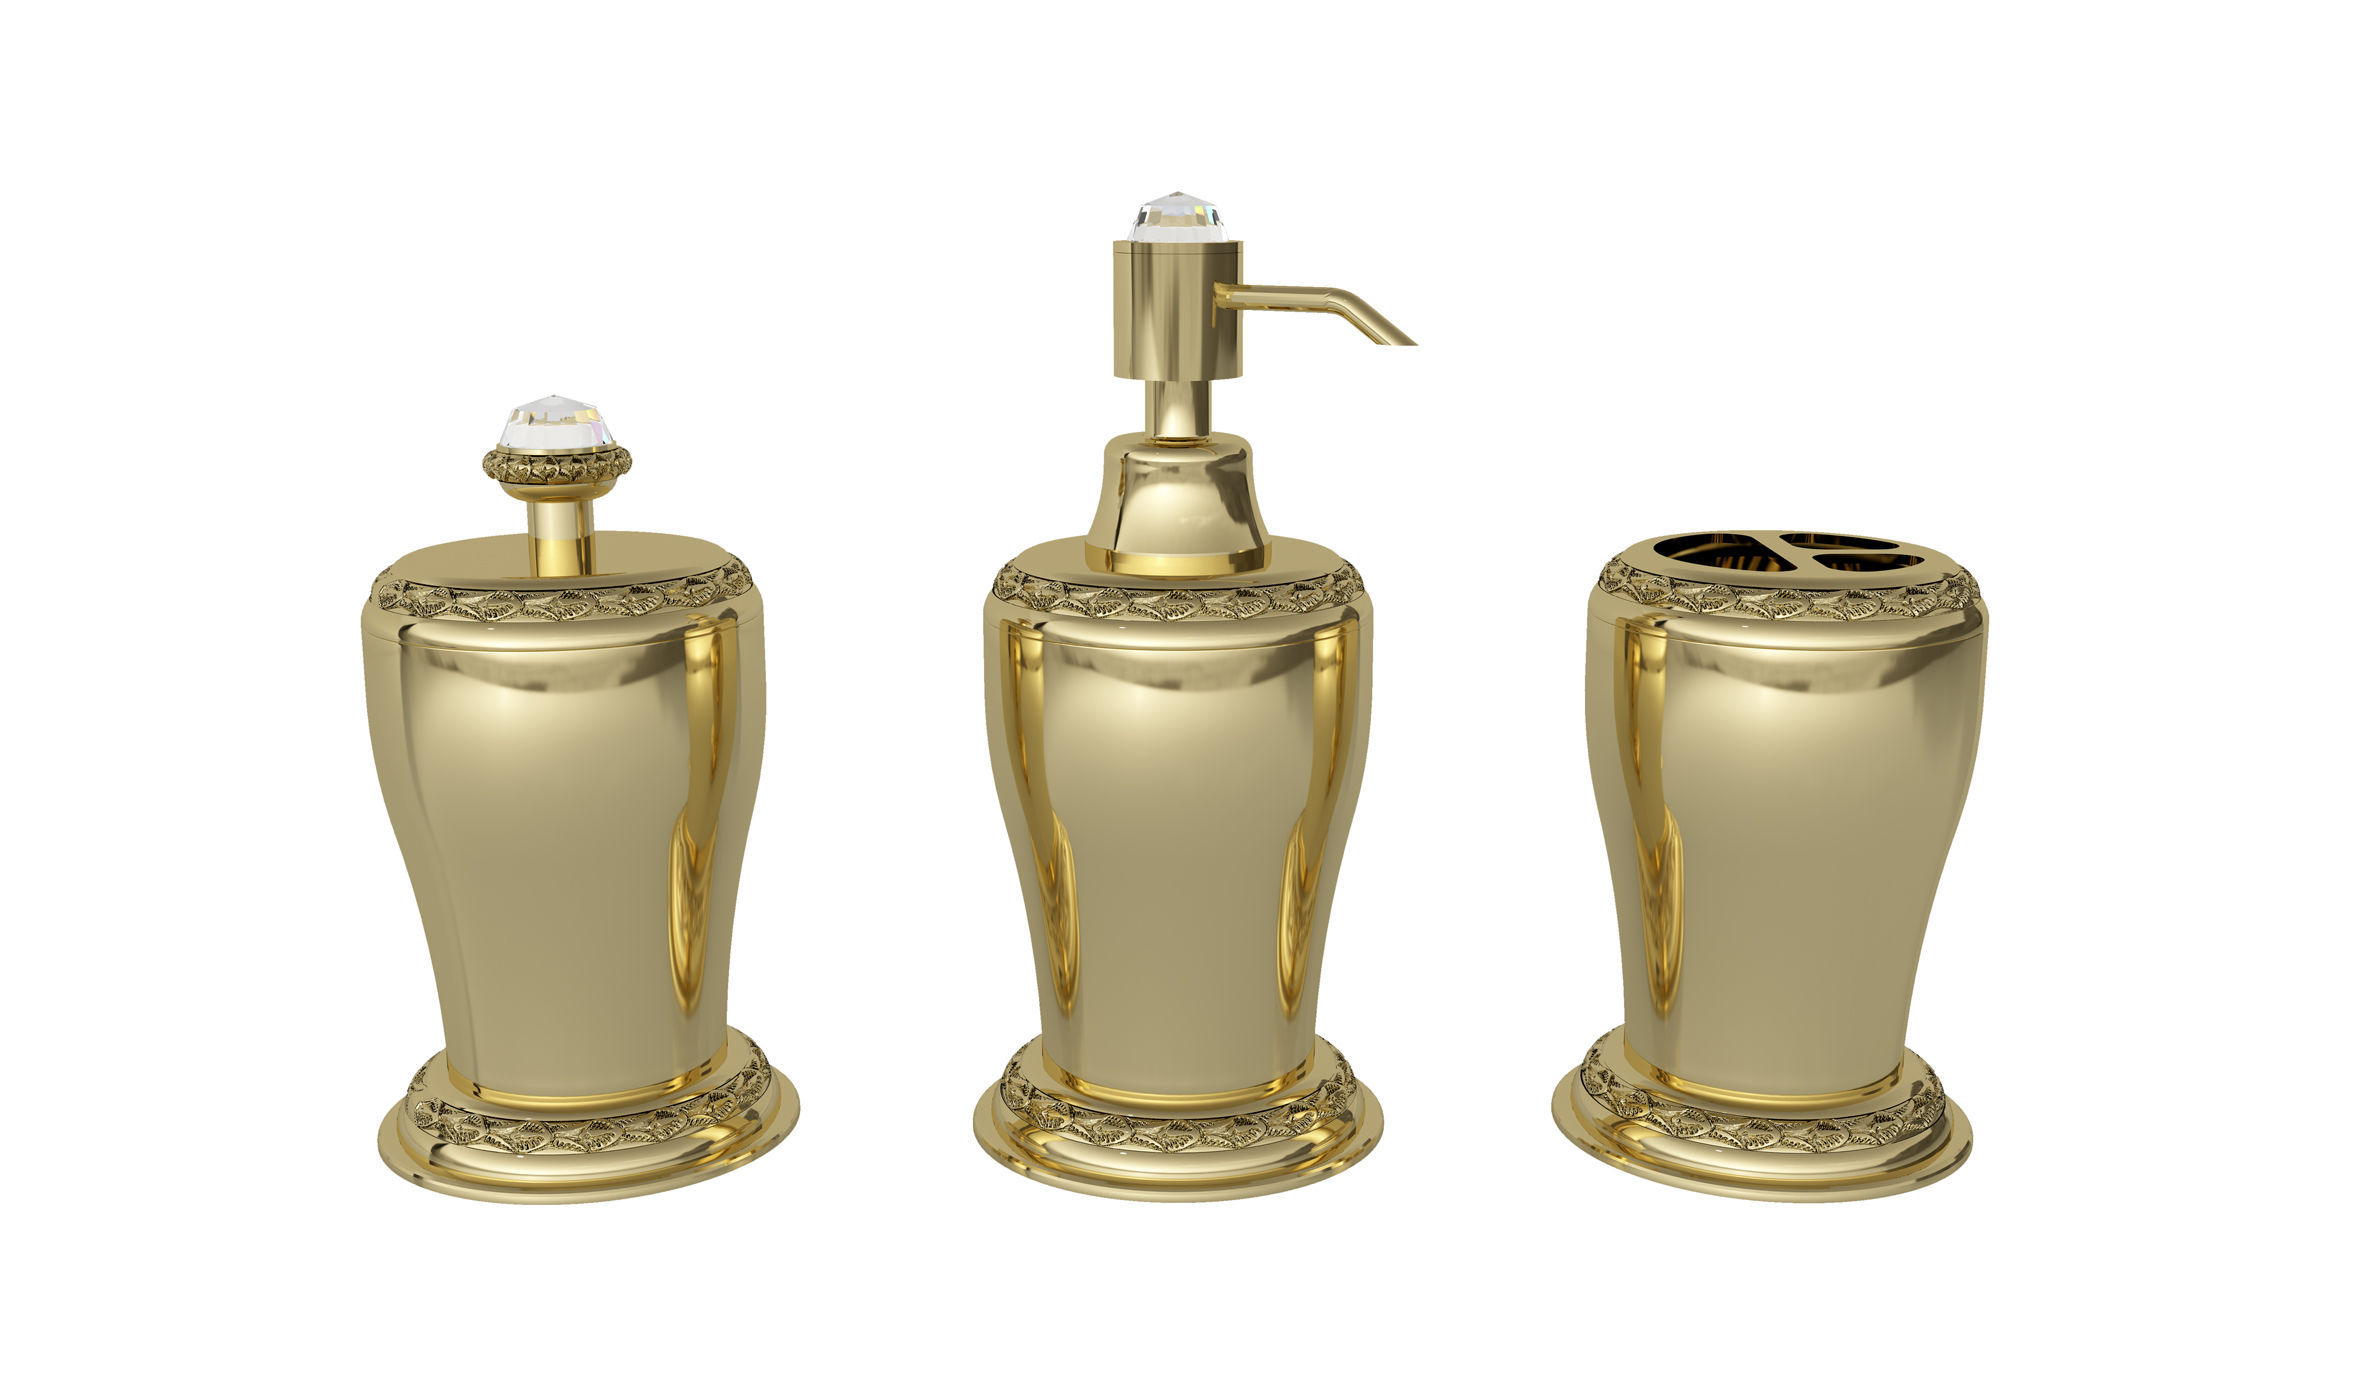 Free Standing Soap Dispenser Plastic Manual Exclusive Bathroom Accessories With Swarovski Crystal